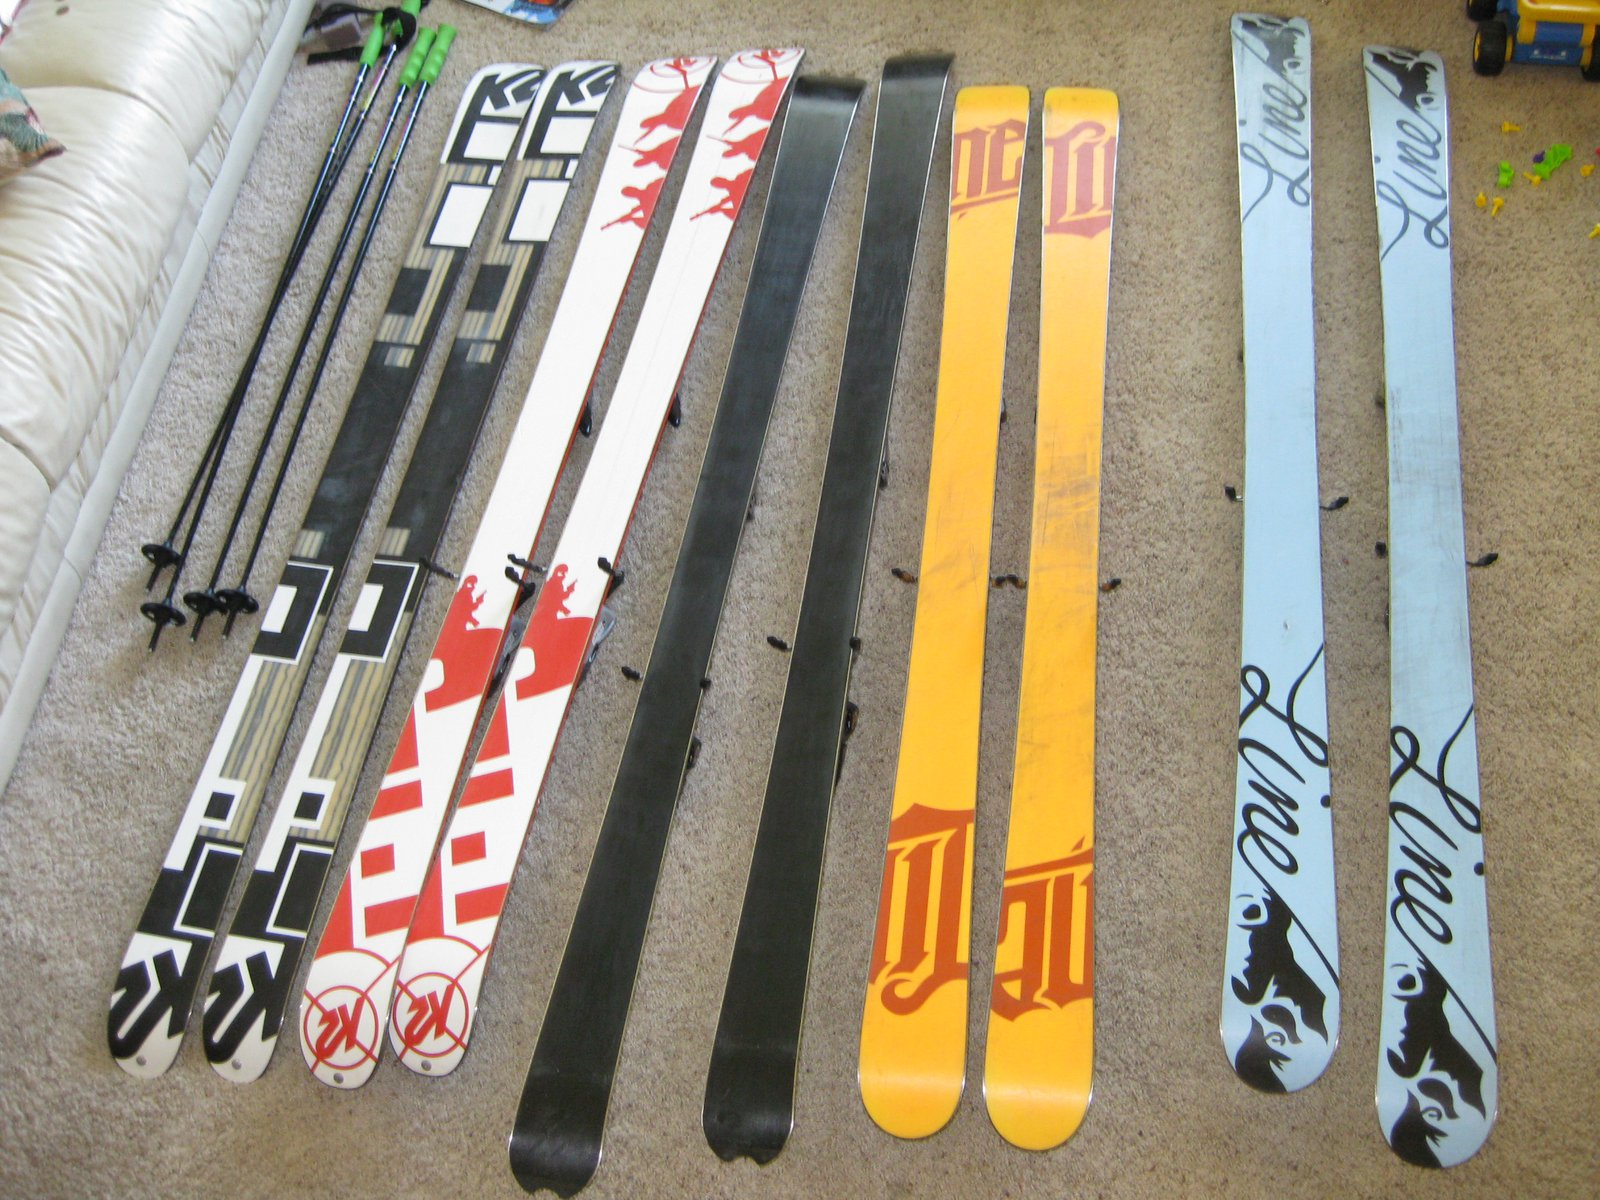 Bases of the skis.